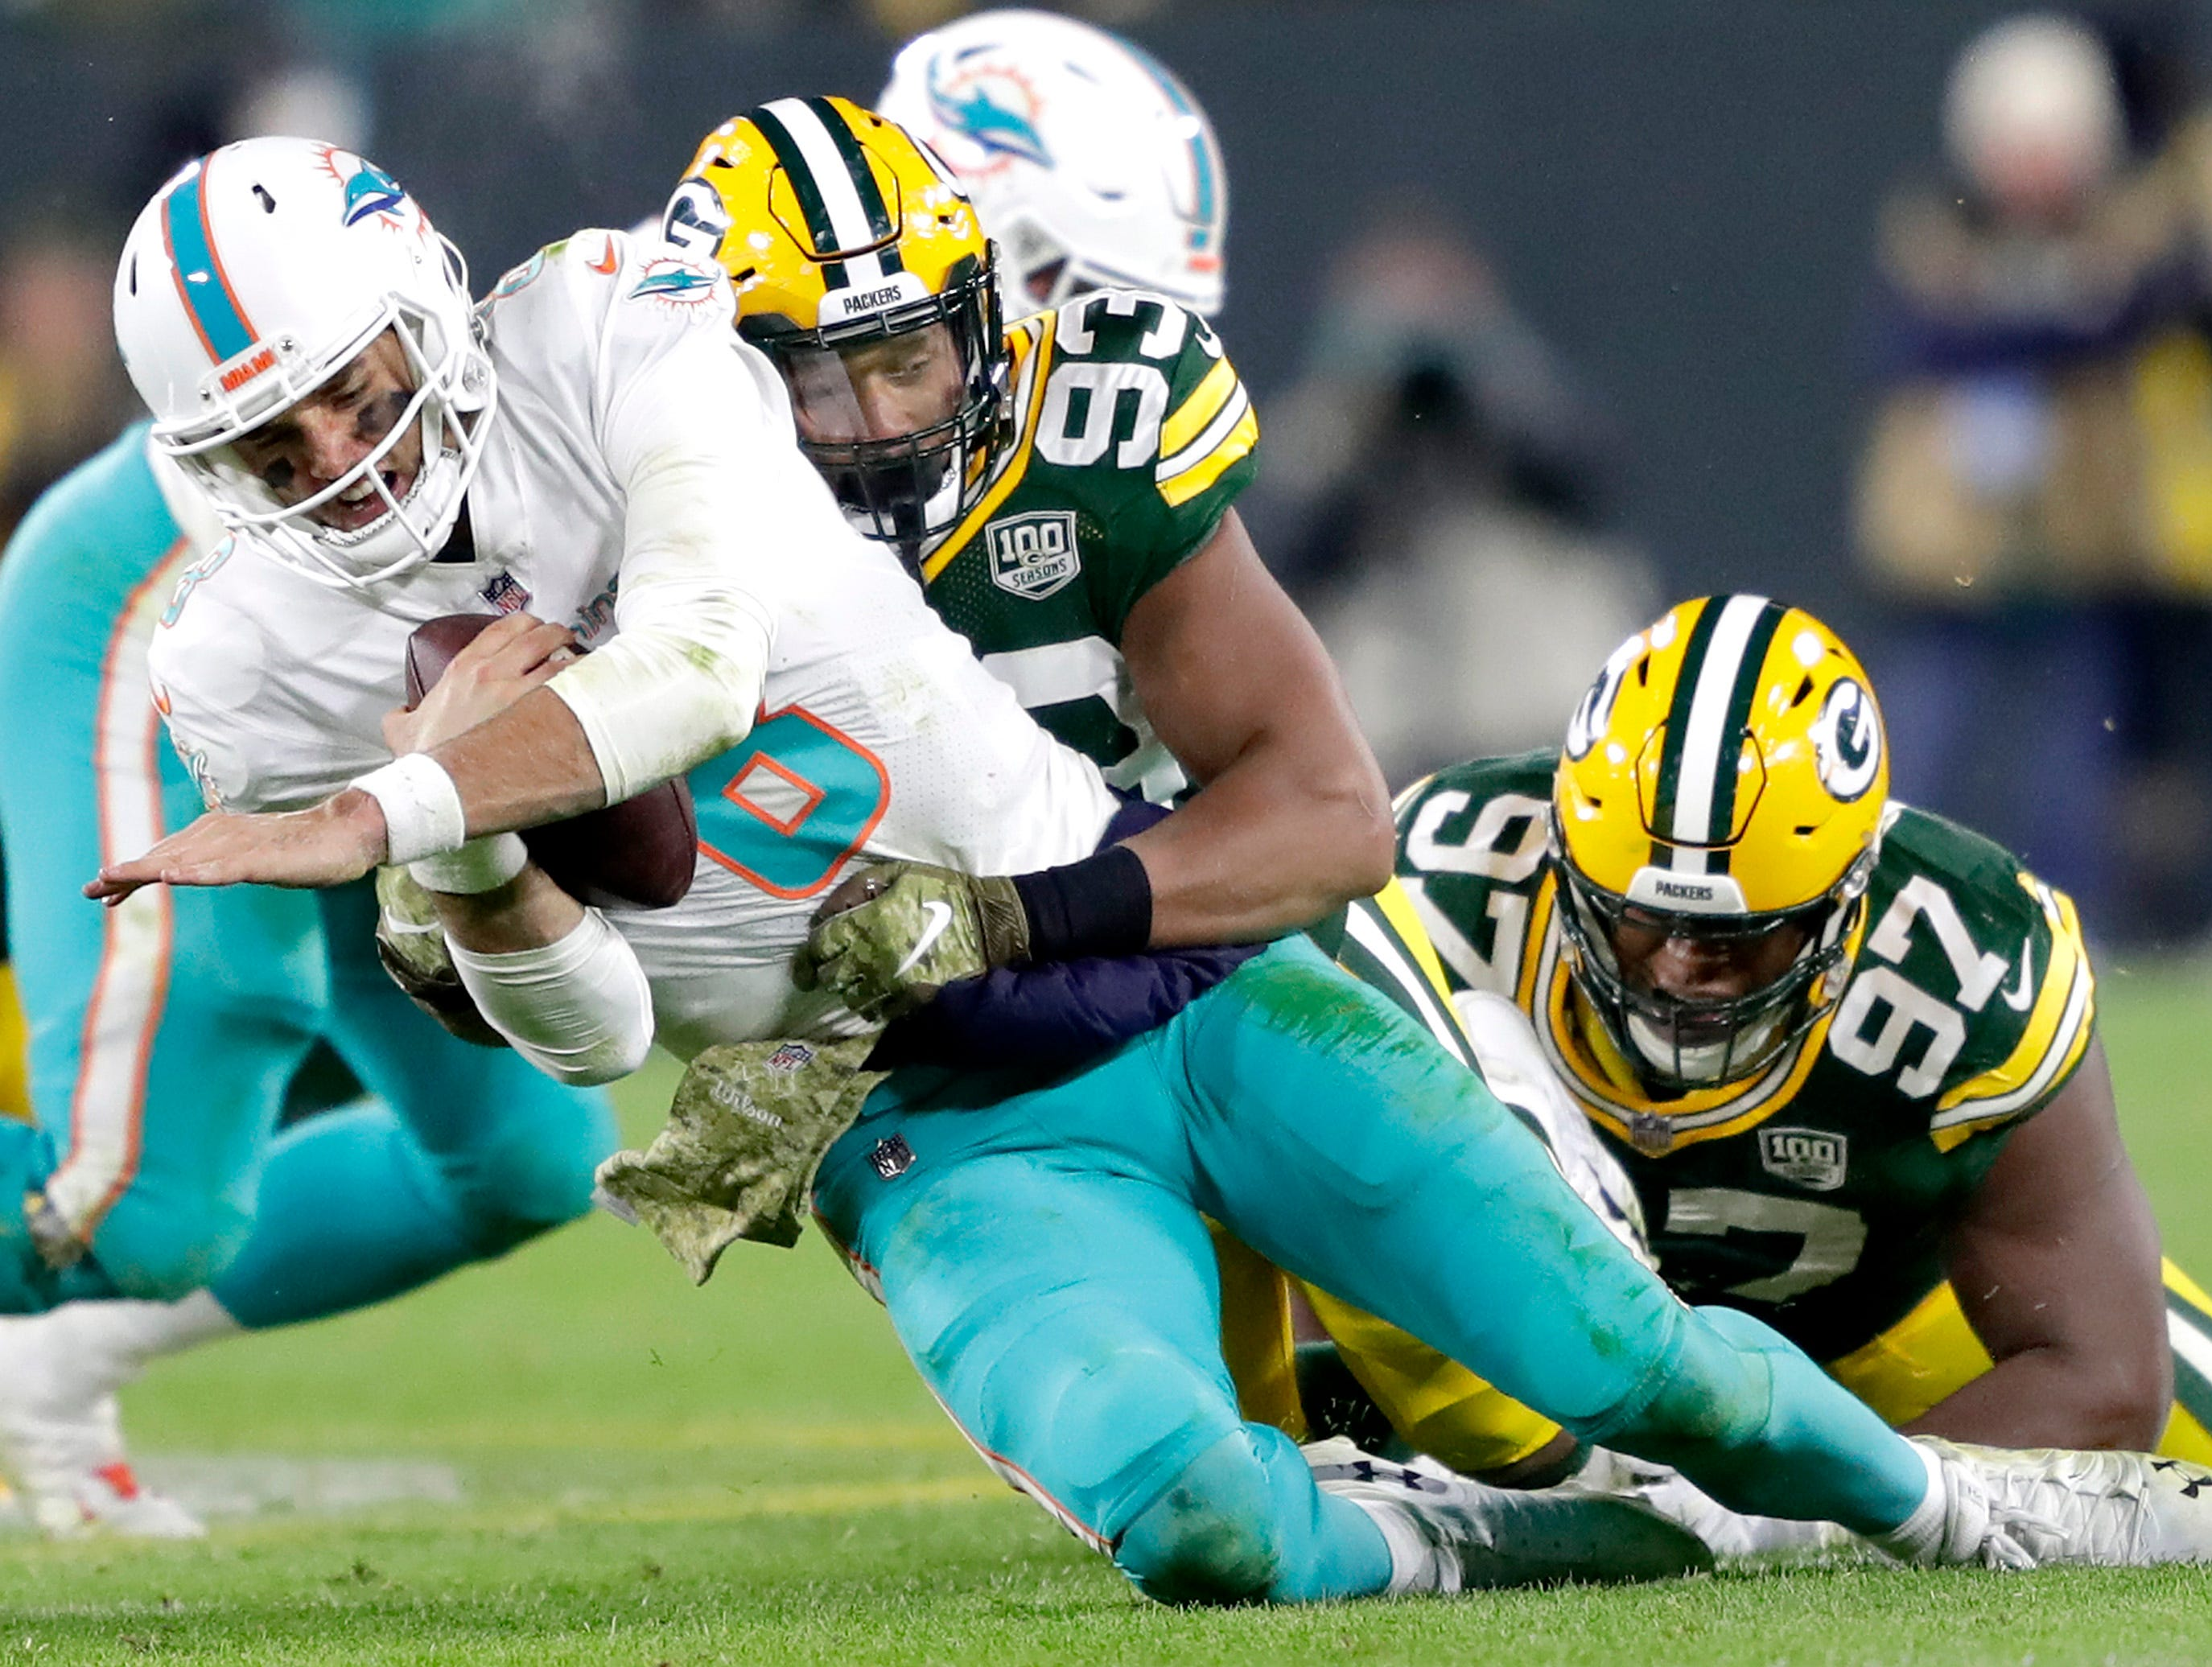 Green Bay Packers linebacker Reggie Gilbert sacks Miami Dolphins quarterback Brock Osweiler in the fourth quarter of their football game on Sunday, November 11, 2018, at Lambeau Field in Green Bay, Wis. Green Bay defeated the Dolphins 31 to 12.